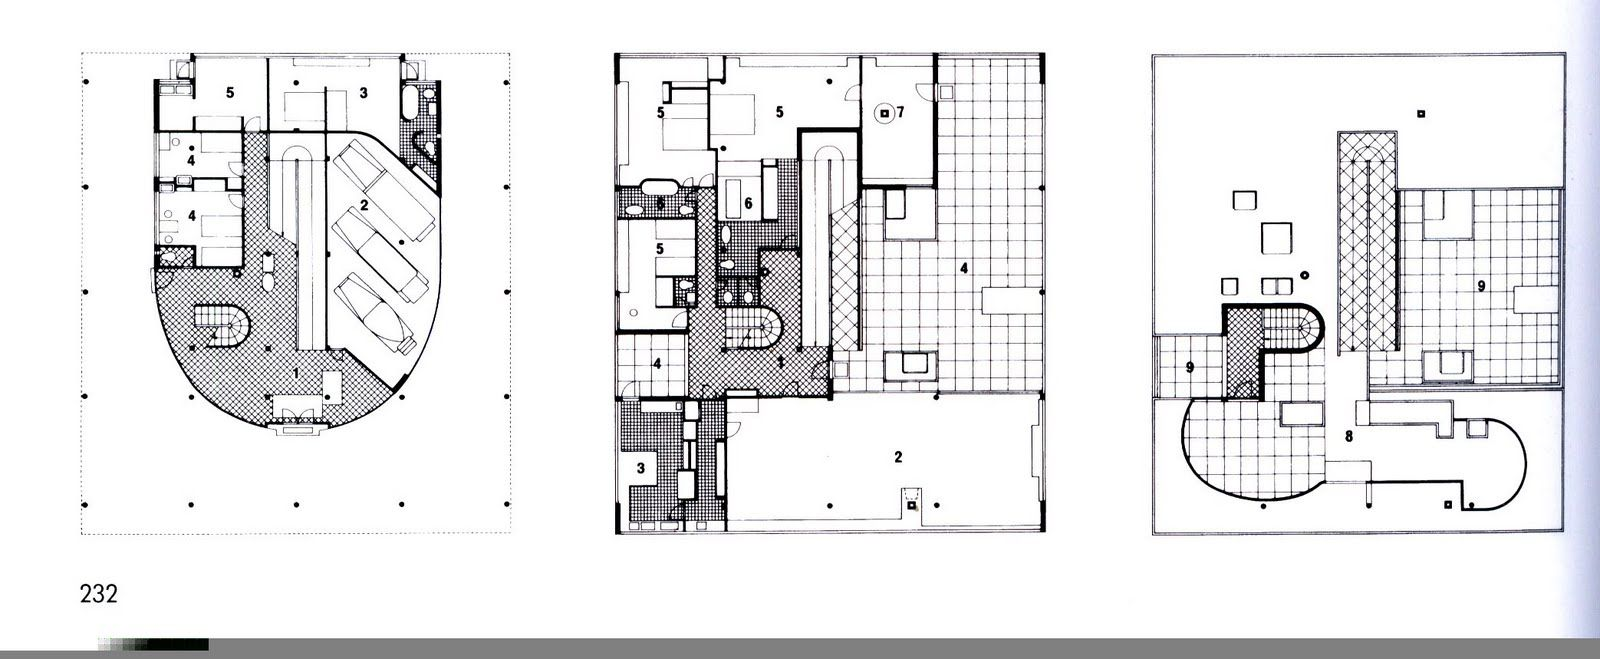 Pin by sunny on villa savoye pinterest villa savoye for Architecture de plan libre